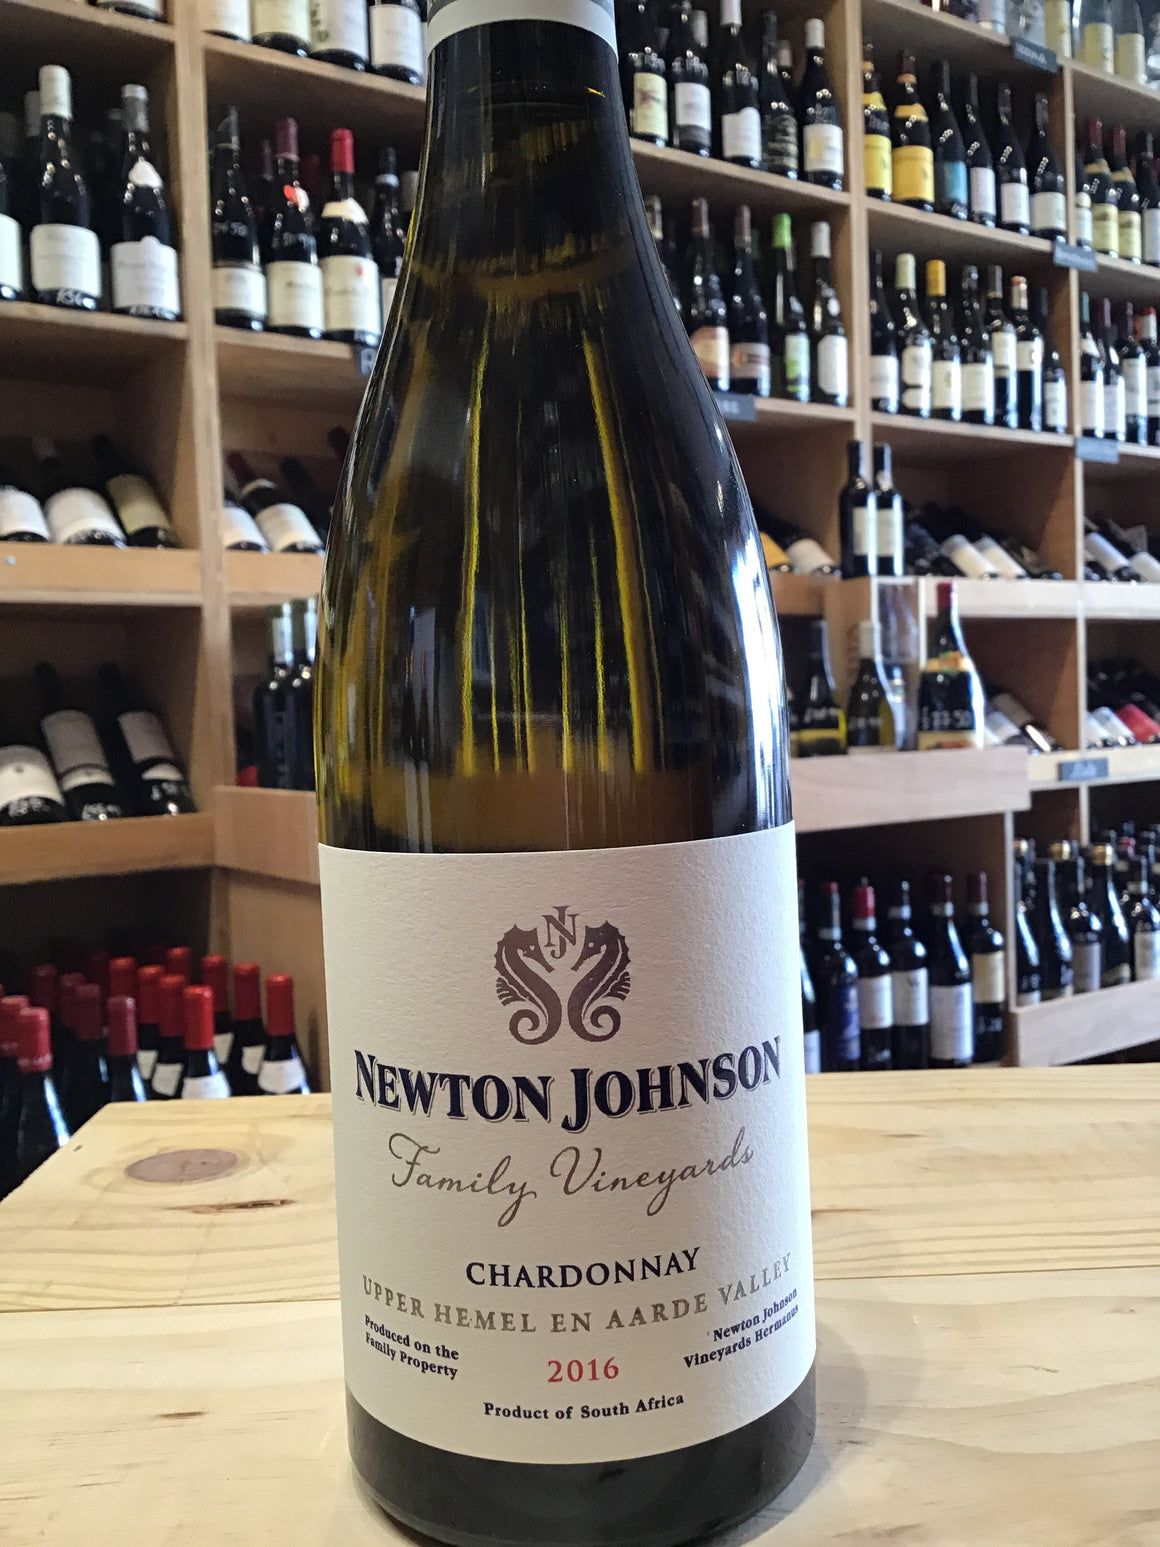 Newton Johnson Family Vineyards Chardonnay 2016 - Butlers Wine Cellar Brighton